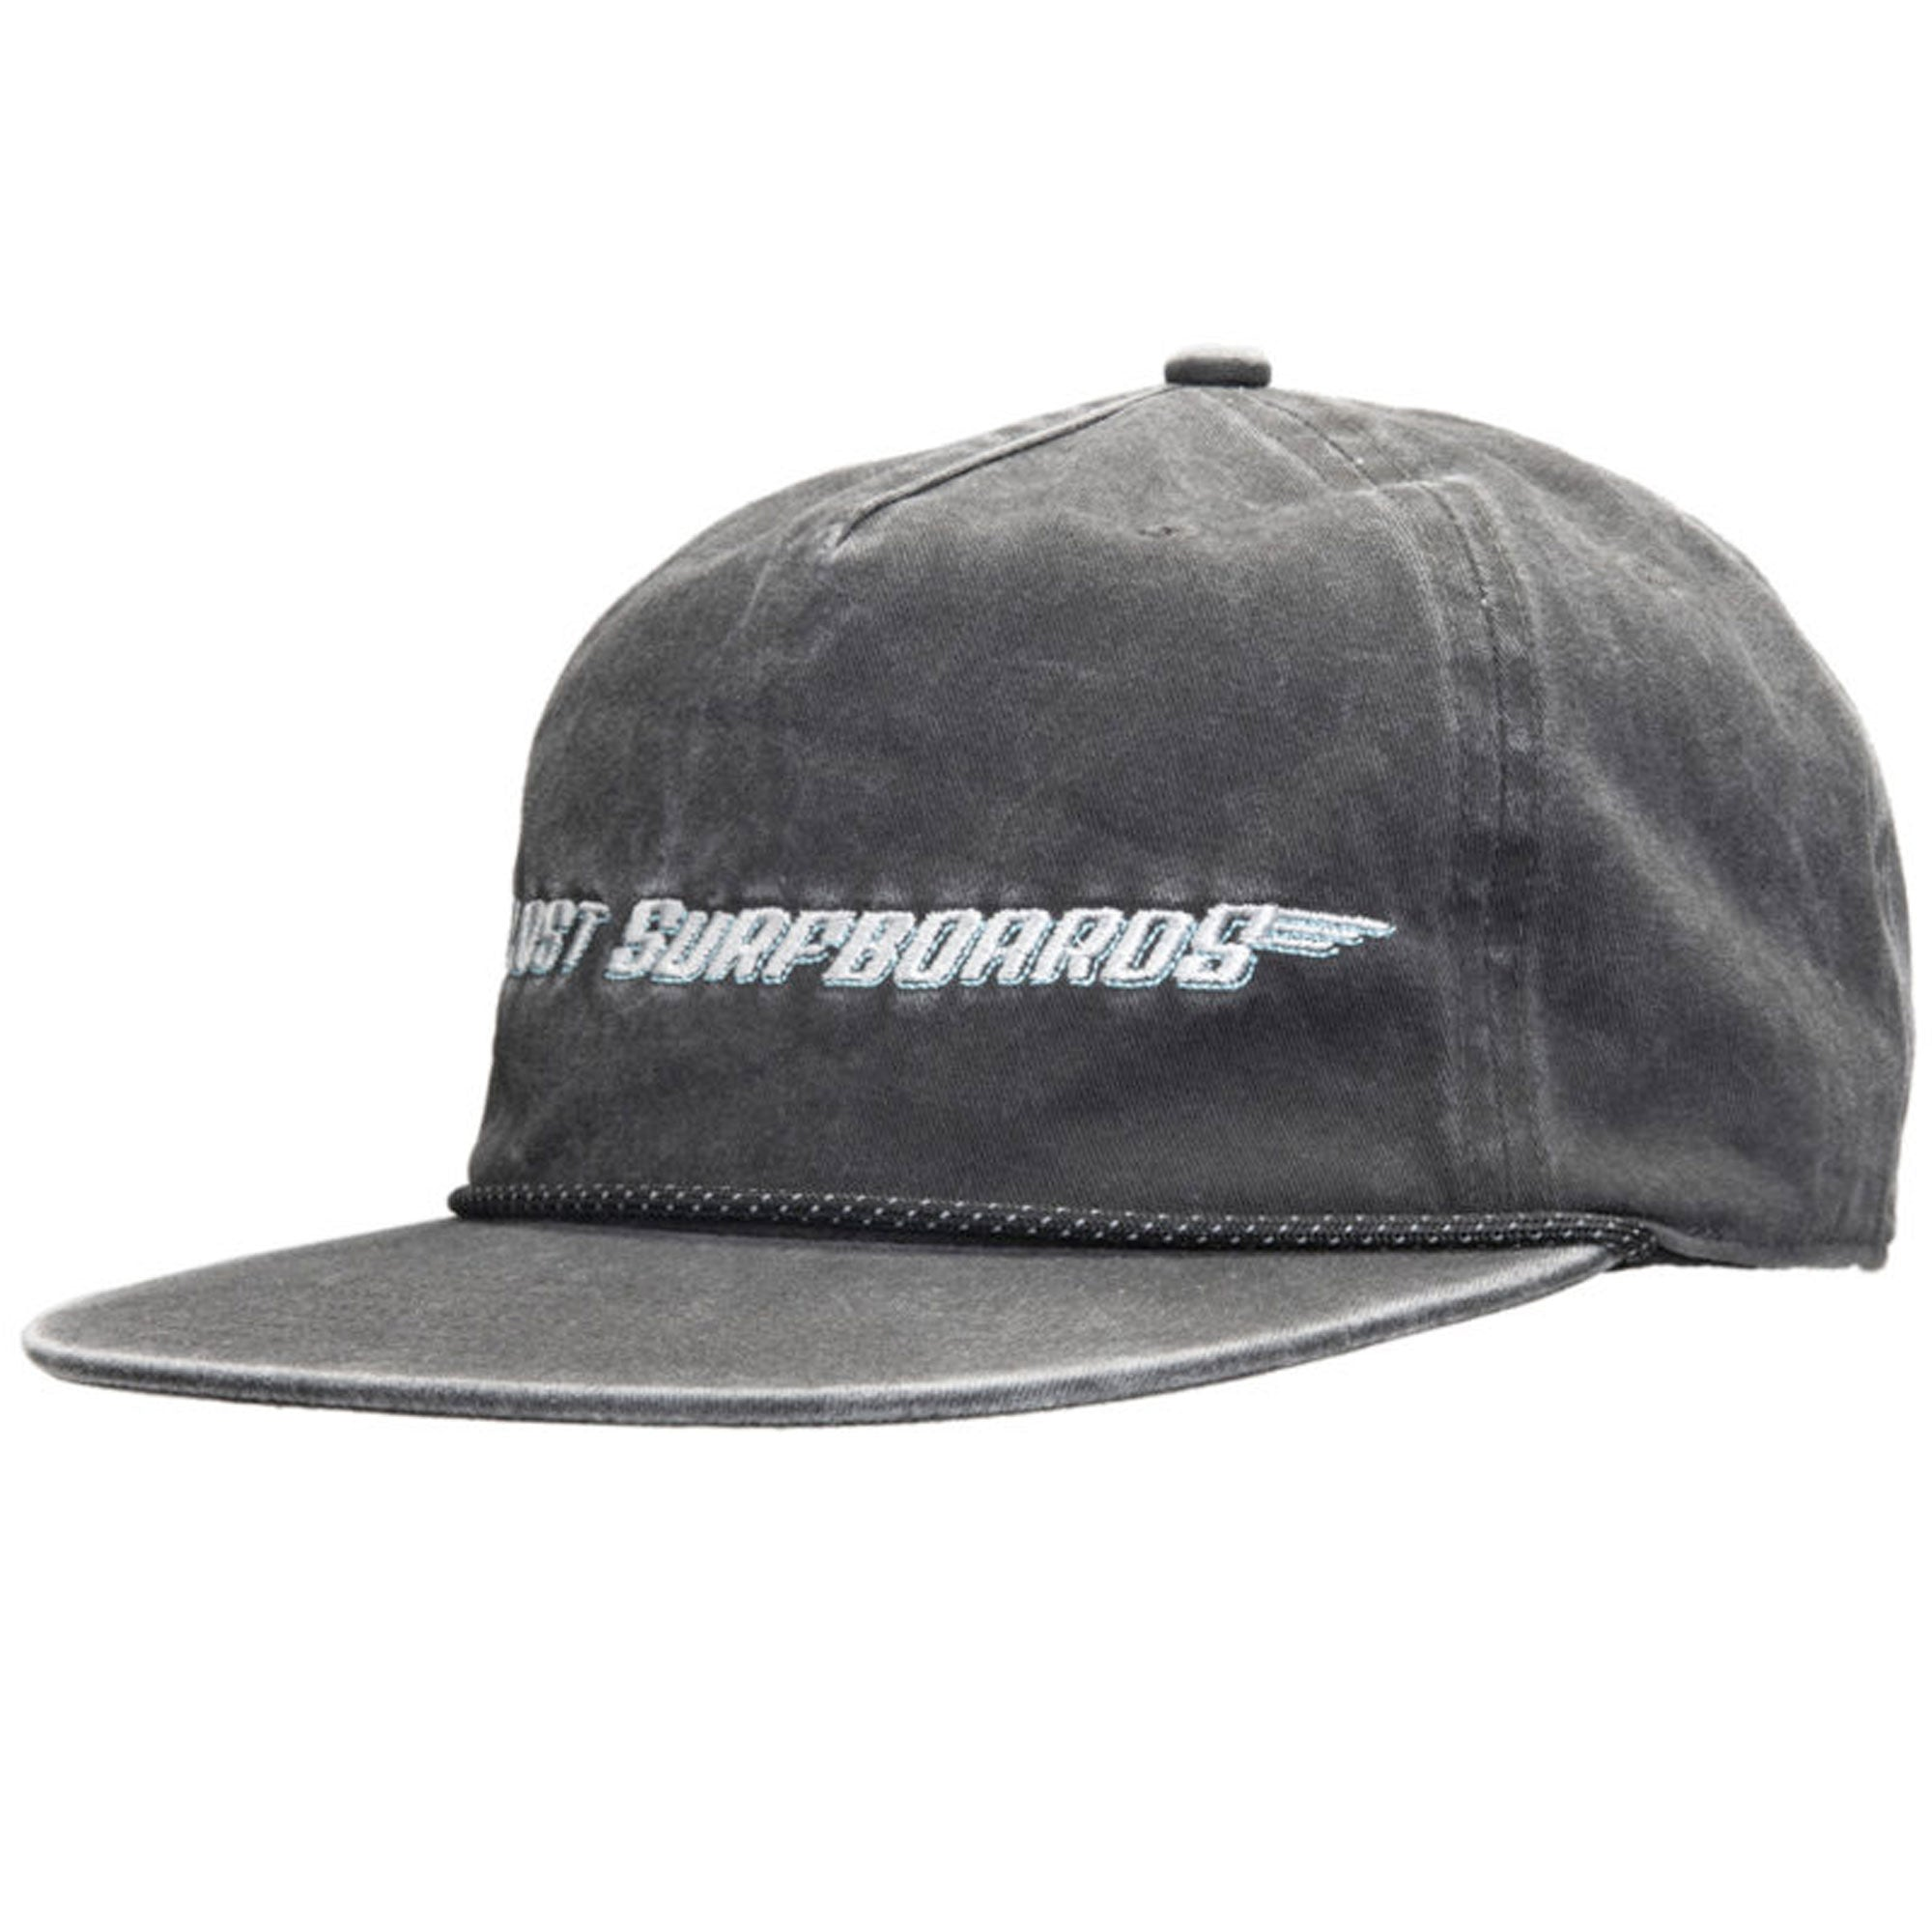 Lost Surfboards Men's Snapback